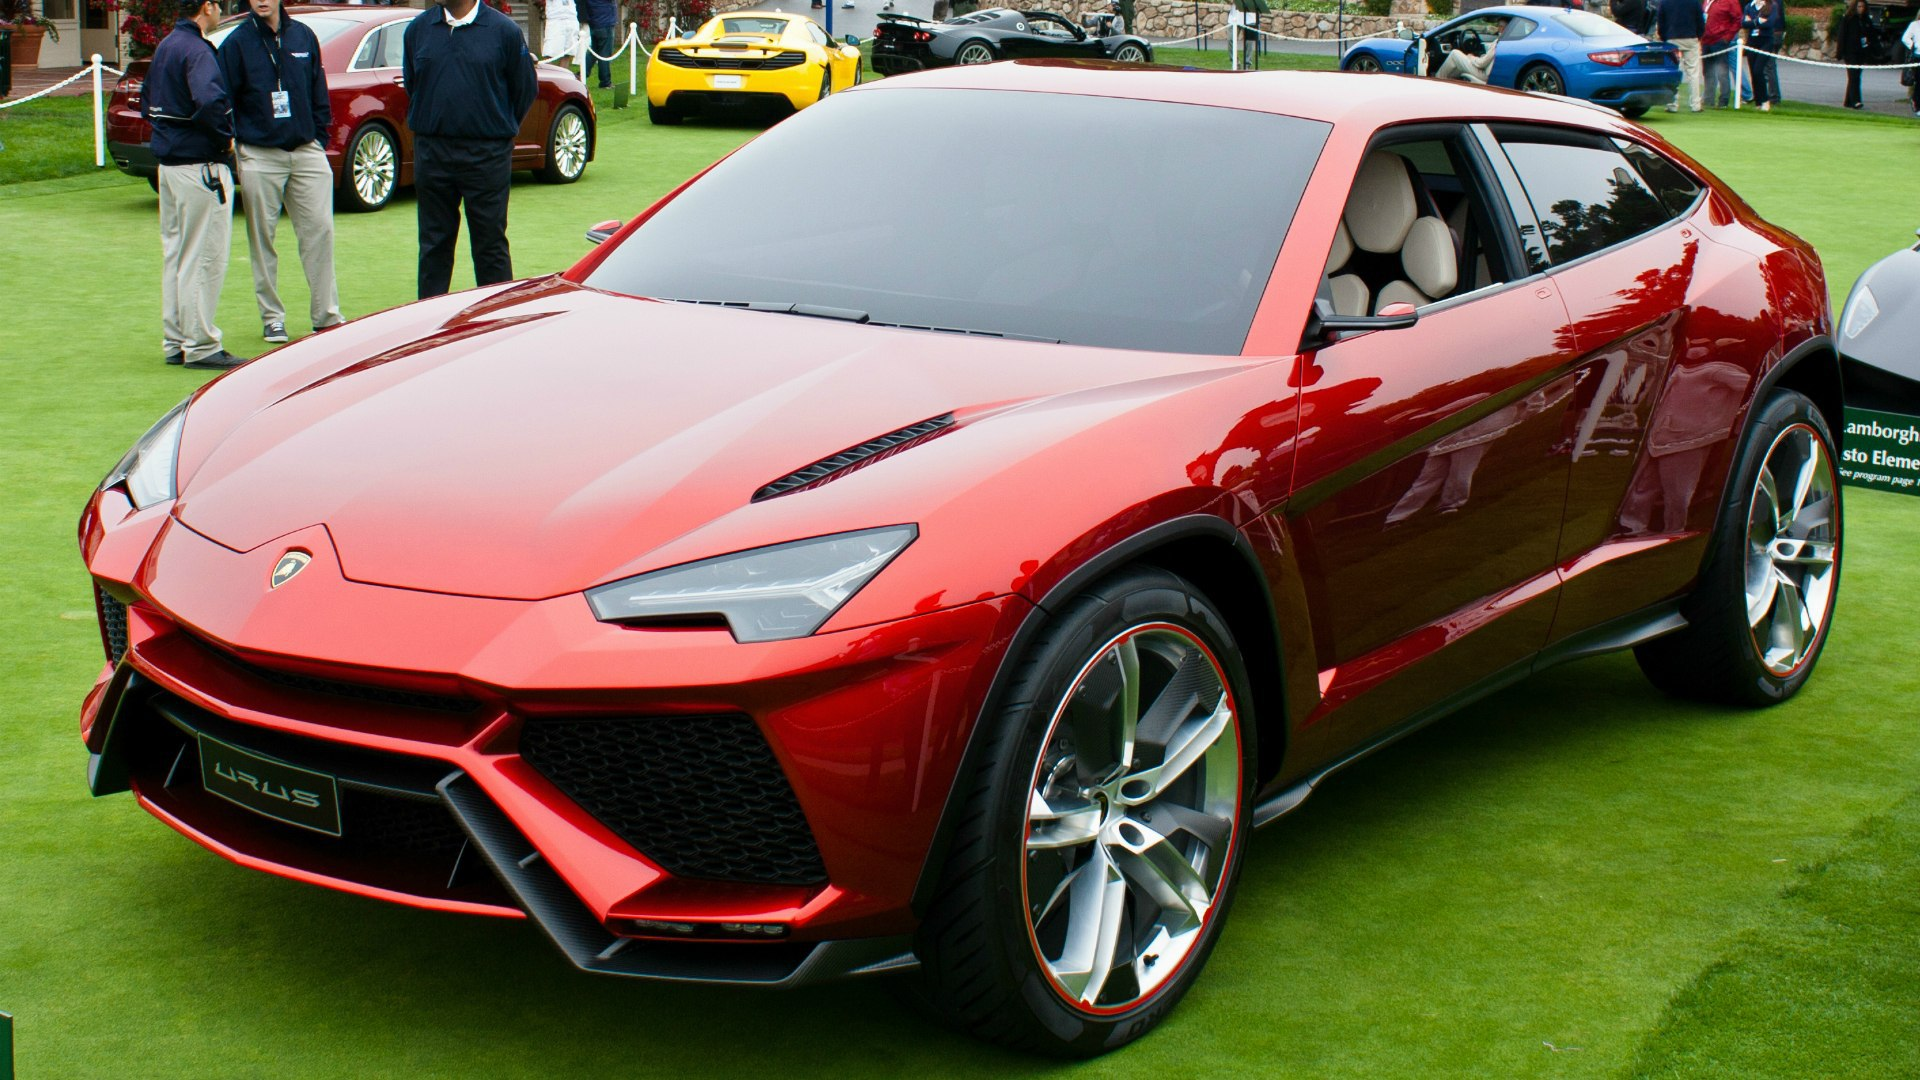 Lamborghini Urus Wallpapers Images Photos Pictures Backgrounds